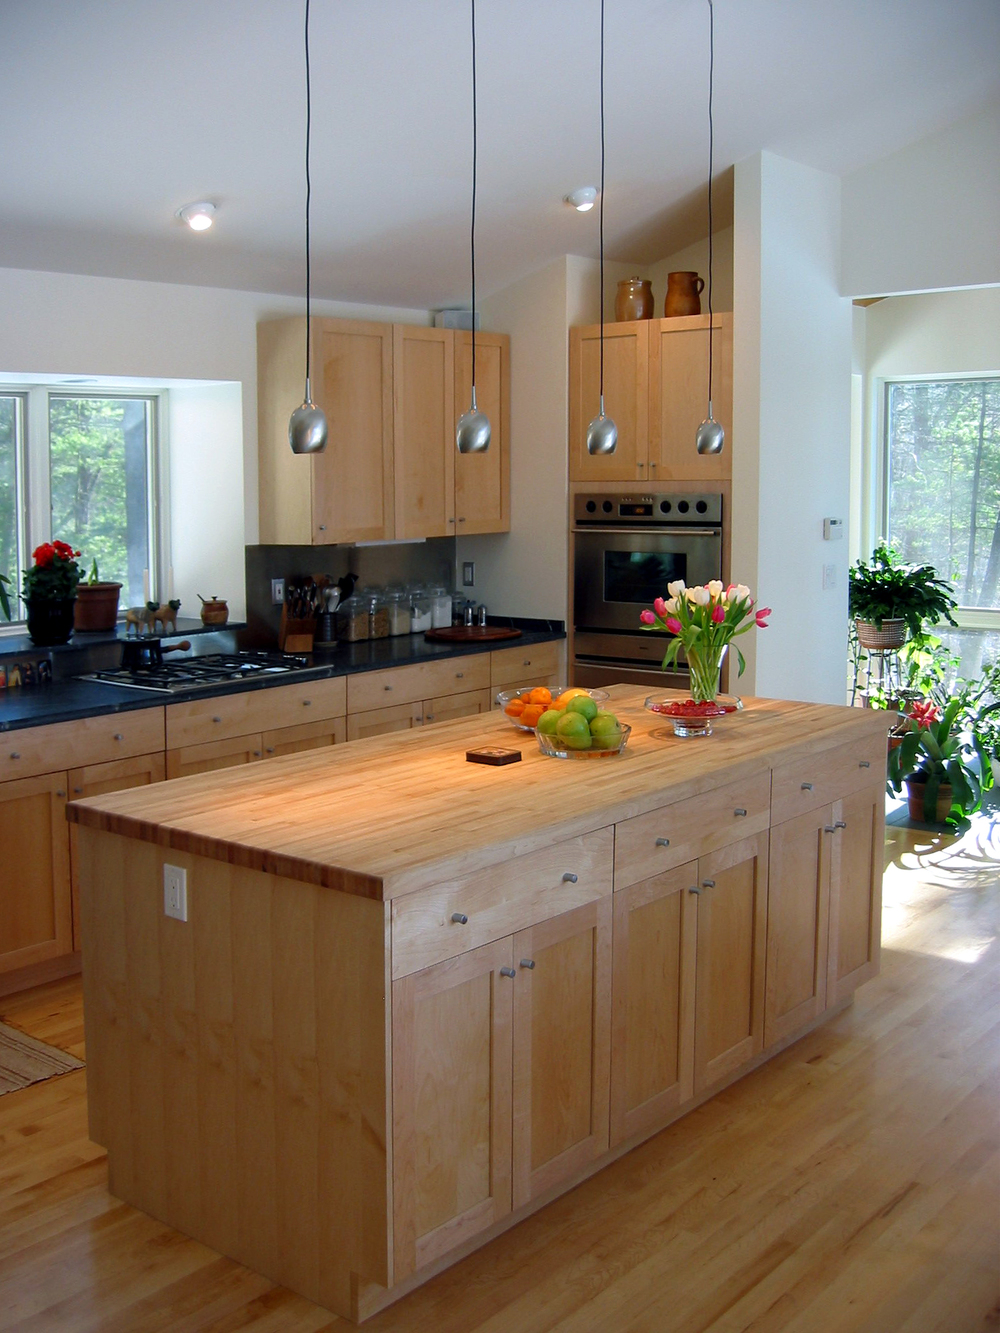 Brandes Interior Kitchen 6.jpg